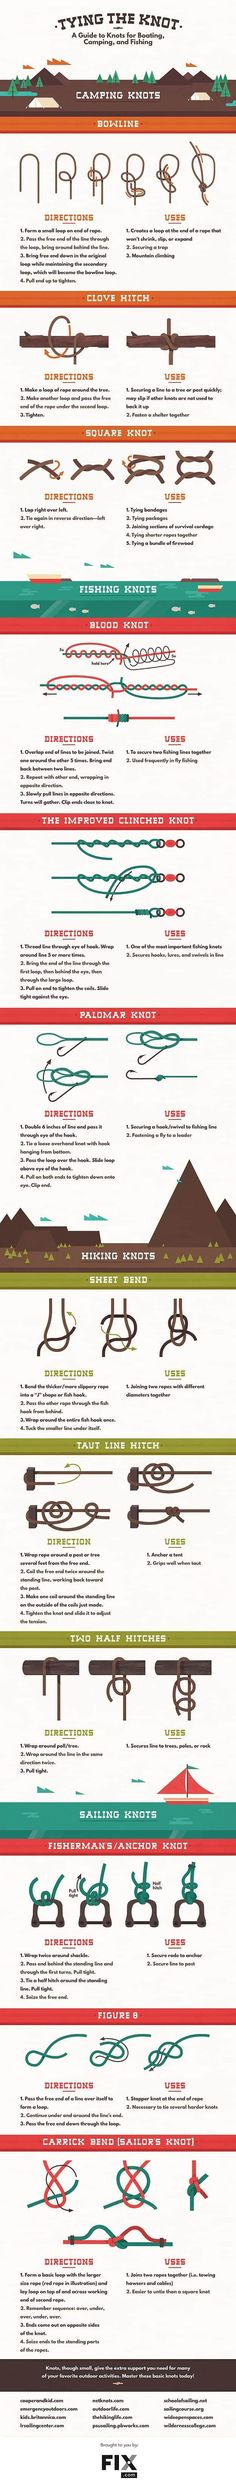 How To Tie Knots   Ways To Tie Different Types of Knots